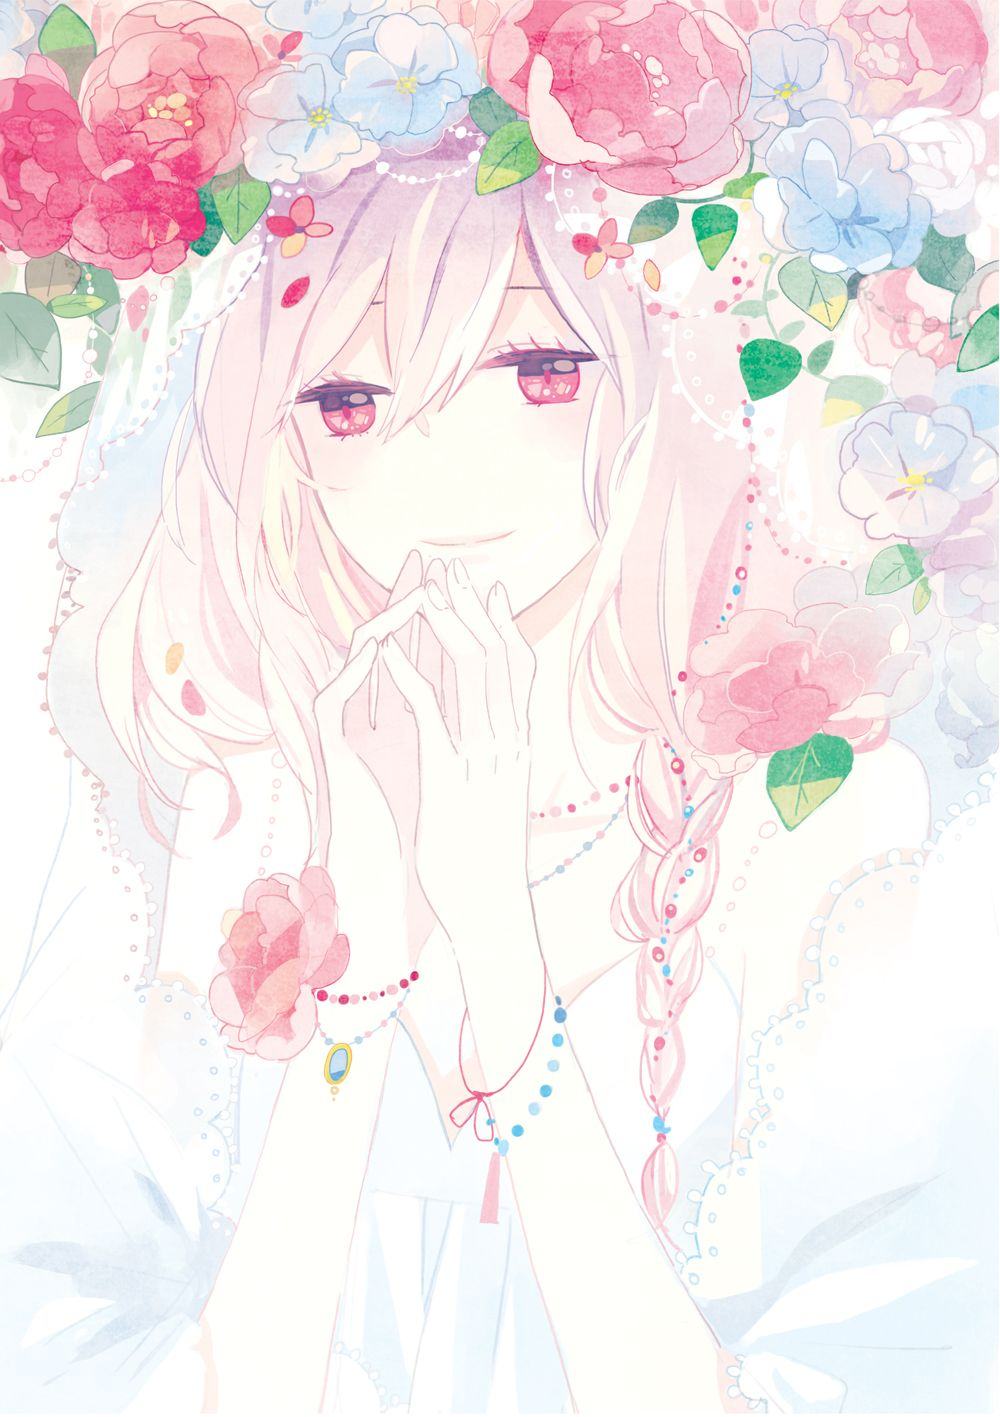 Pretty anime girl with flowers appears to be a bride or maybe just wearing a white dress like luka in just be friends